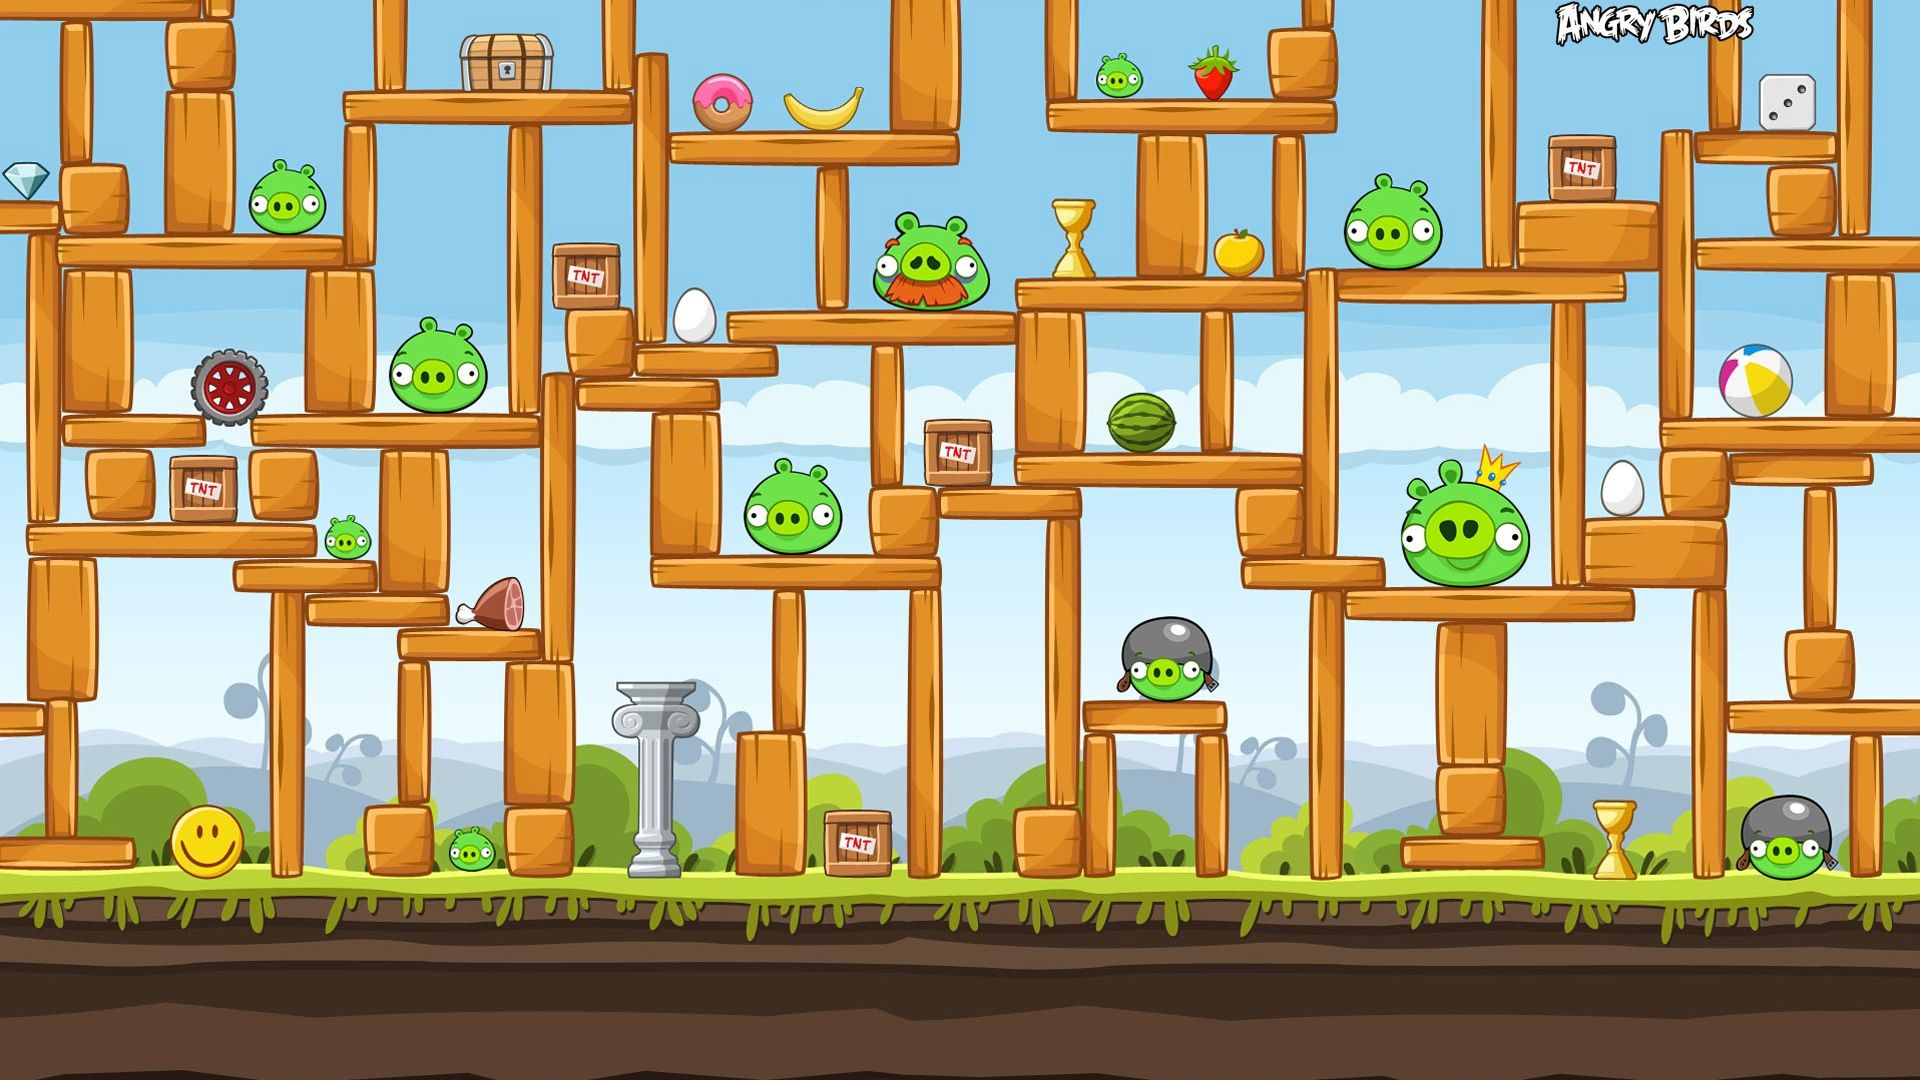 Pictures From The Game Angry Birds